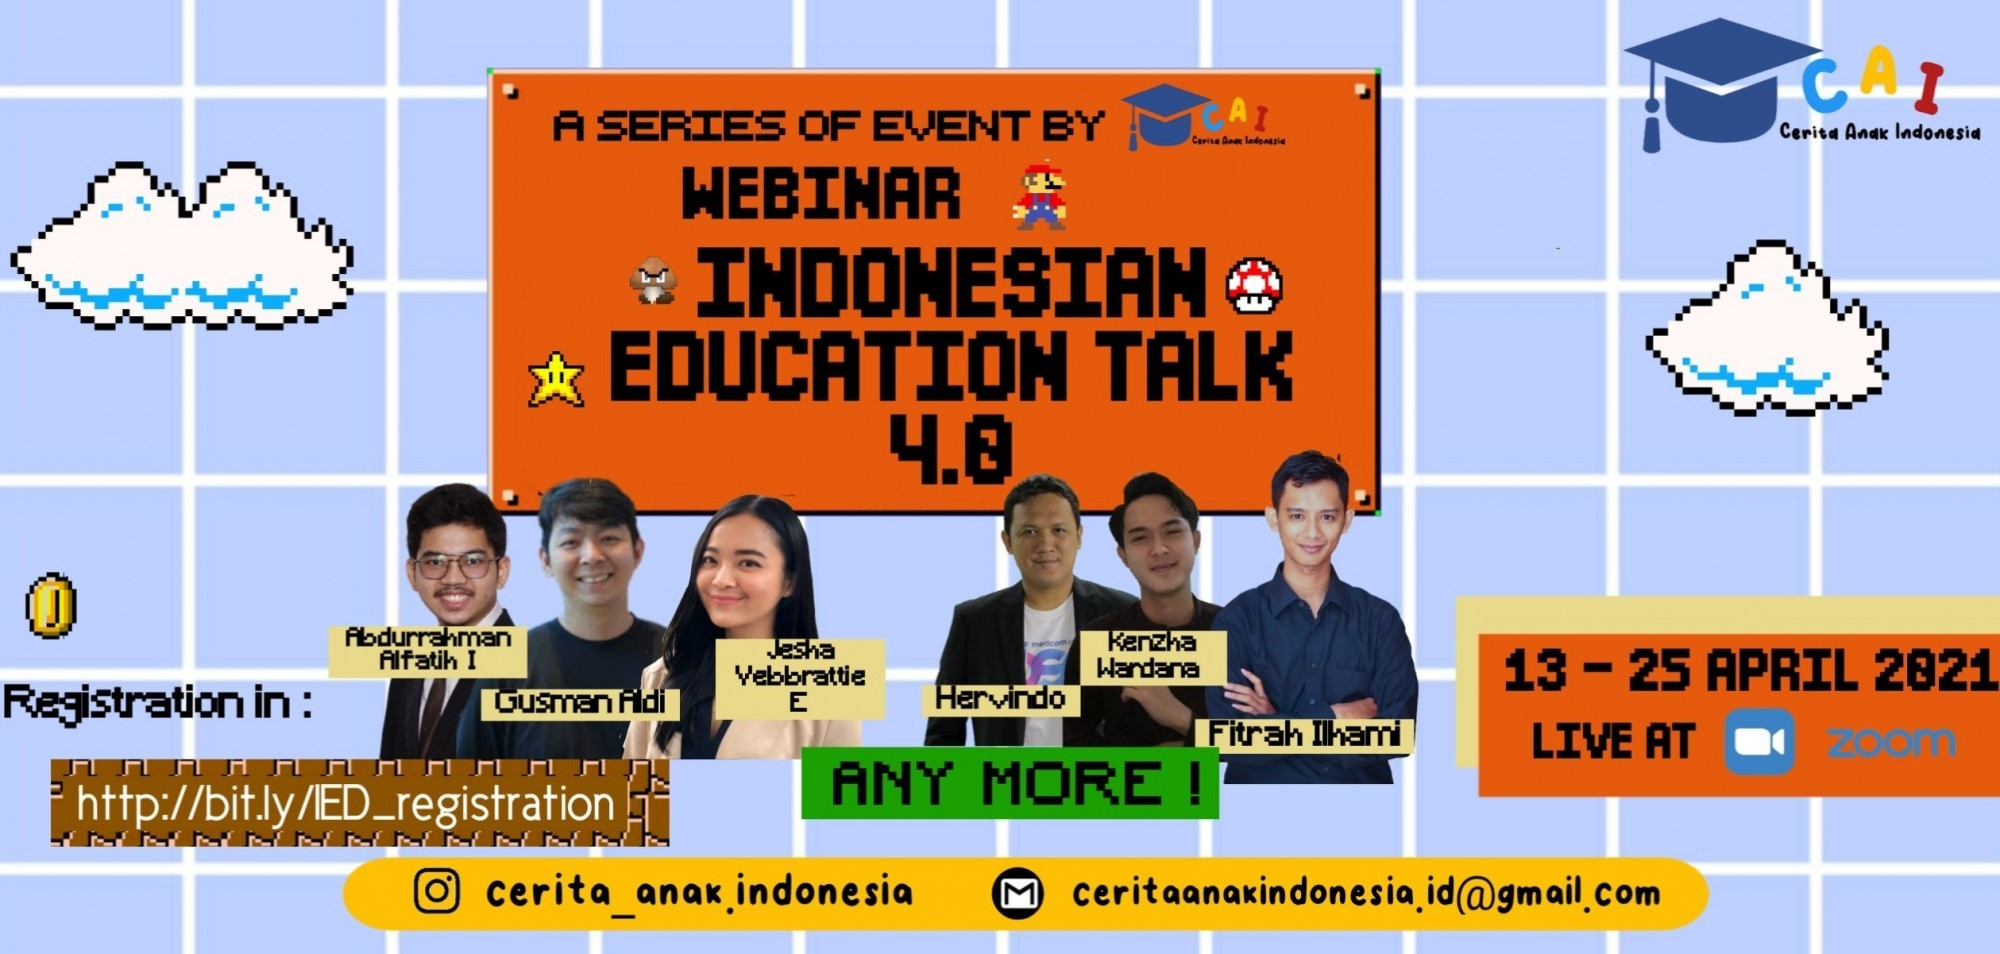 Indonesia Education Talk 4.0